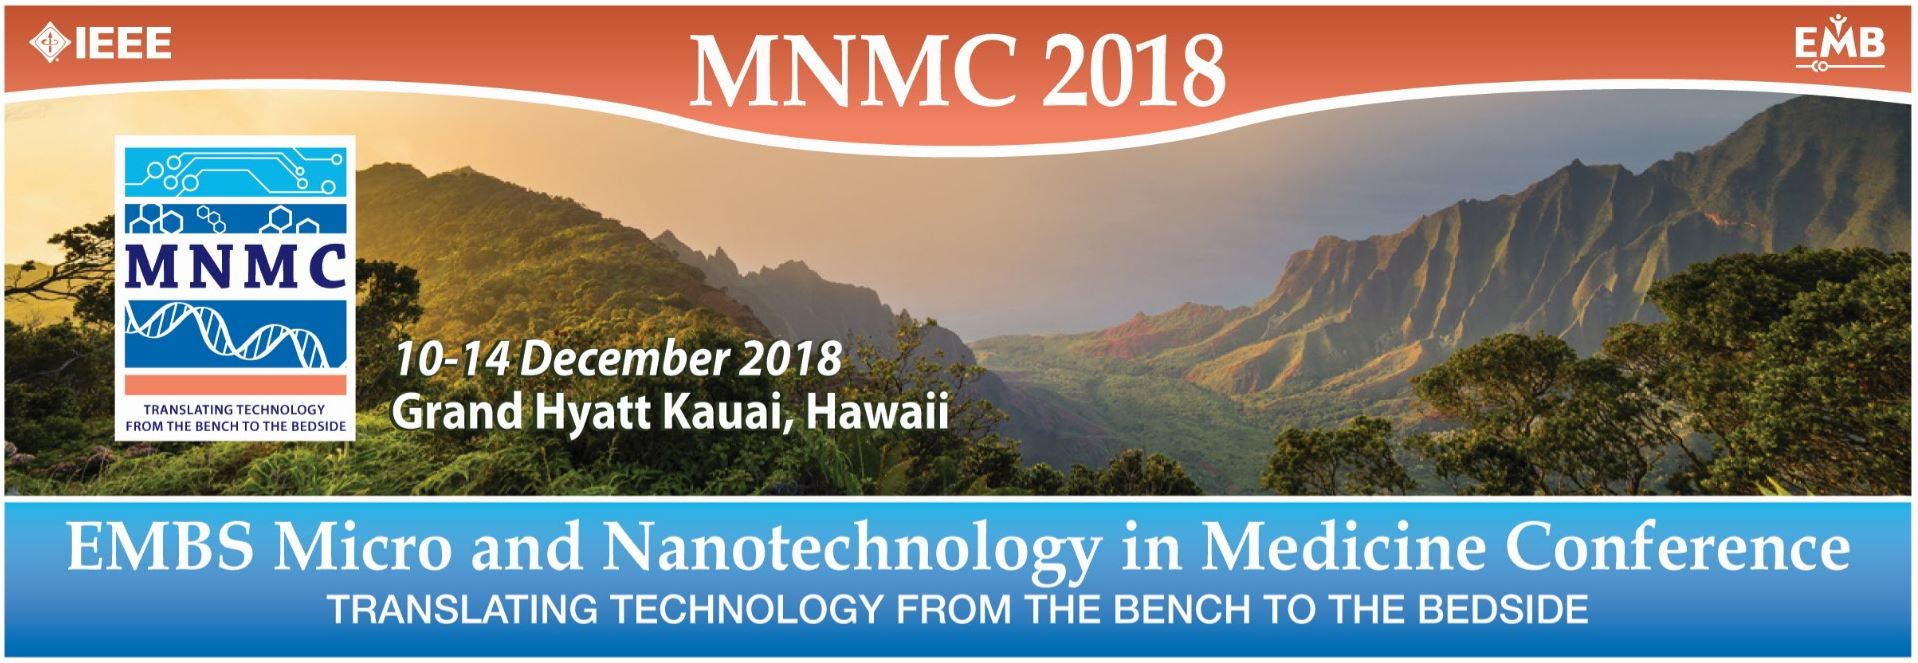 EMBS Micro and Nanotechnology in Medicine Conference 2018